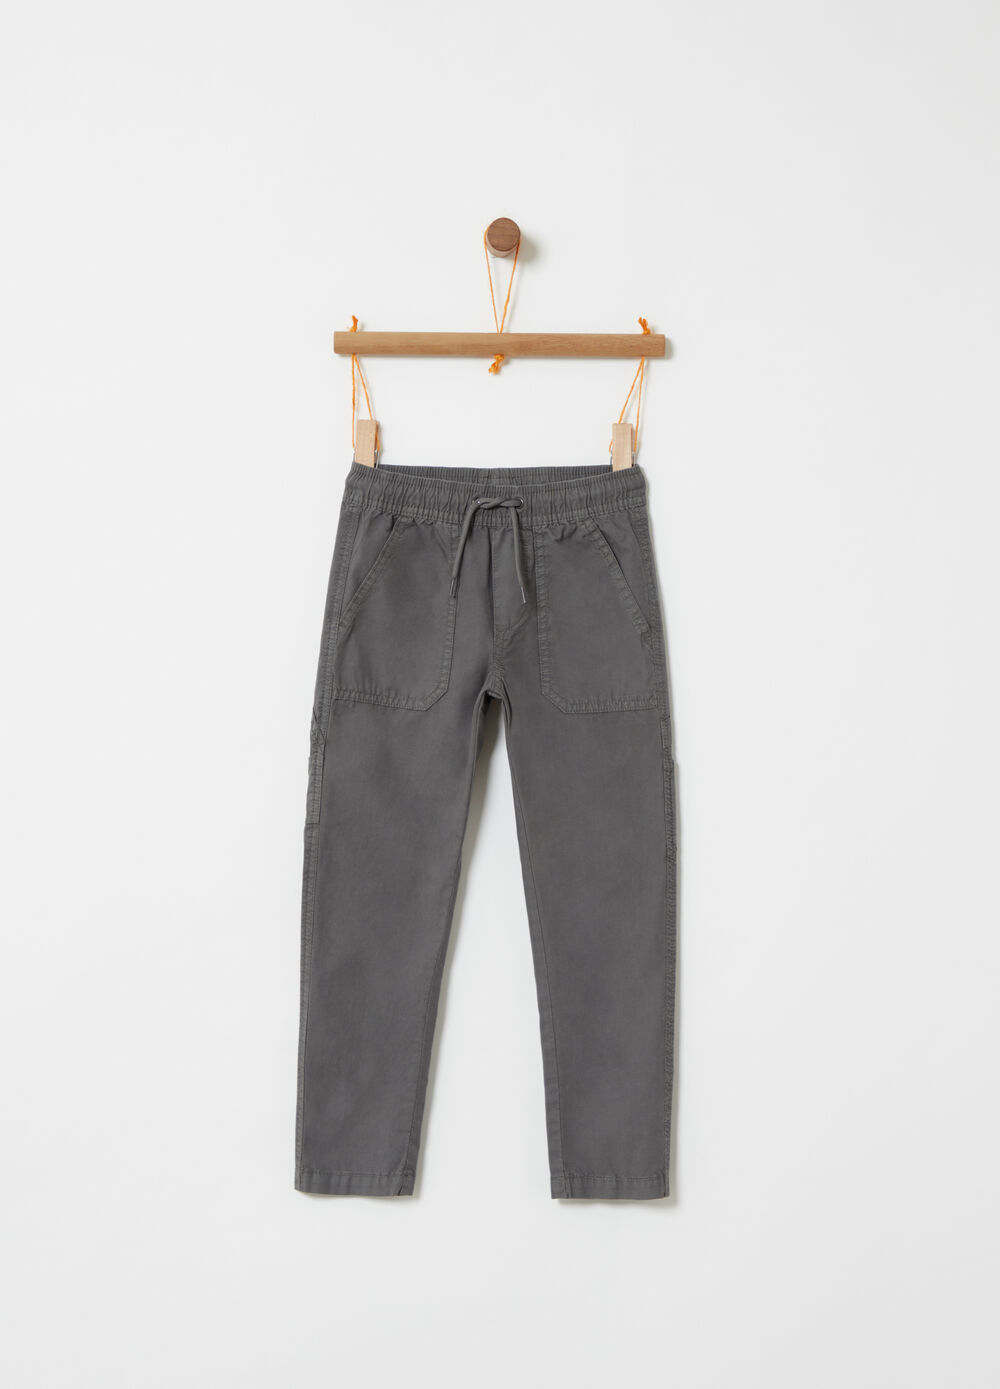 Poplin trousers with pockets